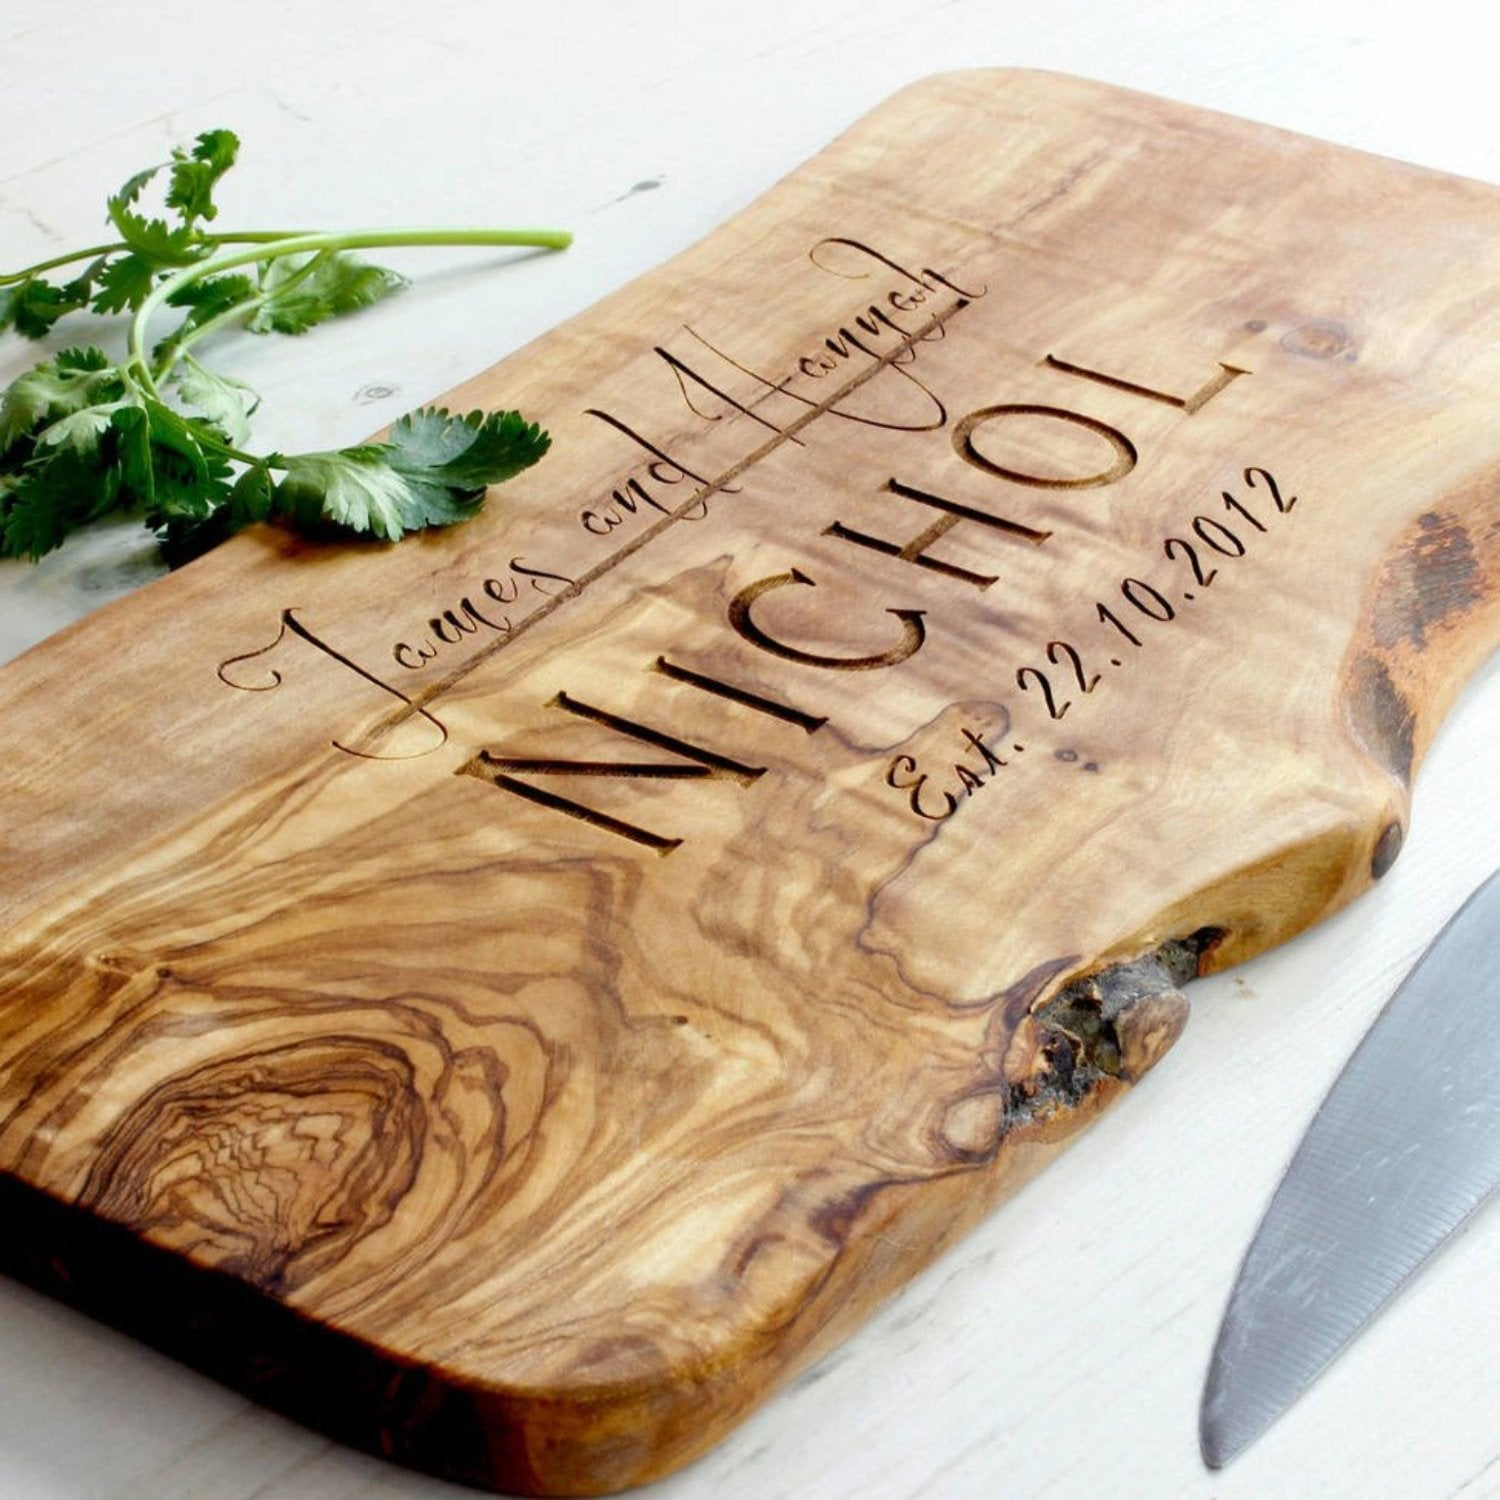 Personalised Rustic Cheese Chopping Board Wedding Anniversary Christmas Gift The Rustic Dish Ltd